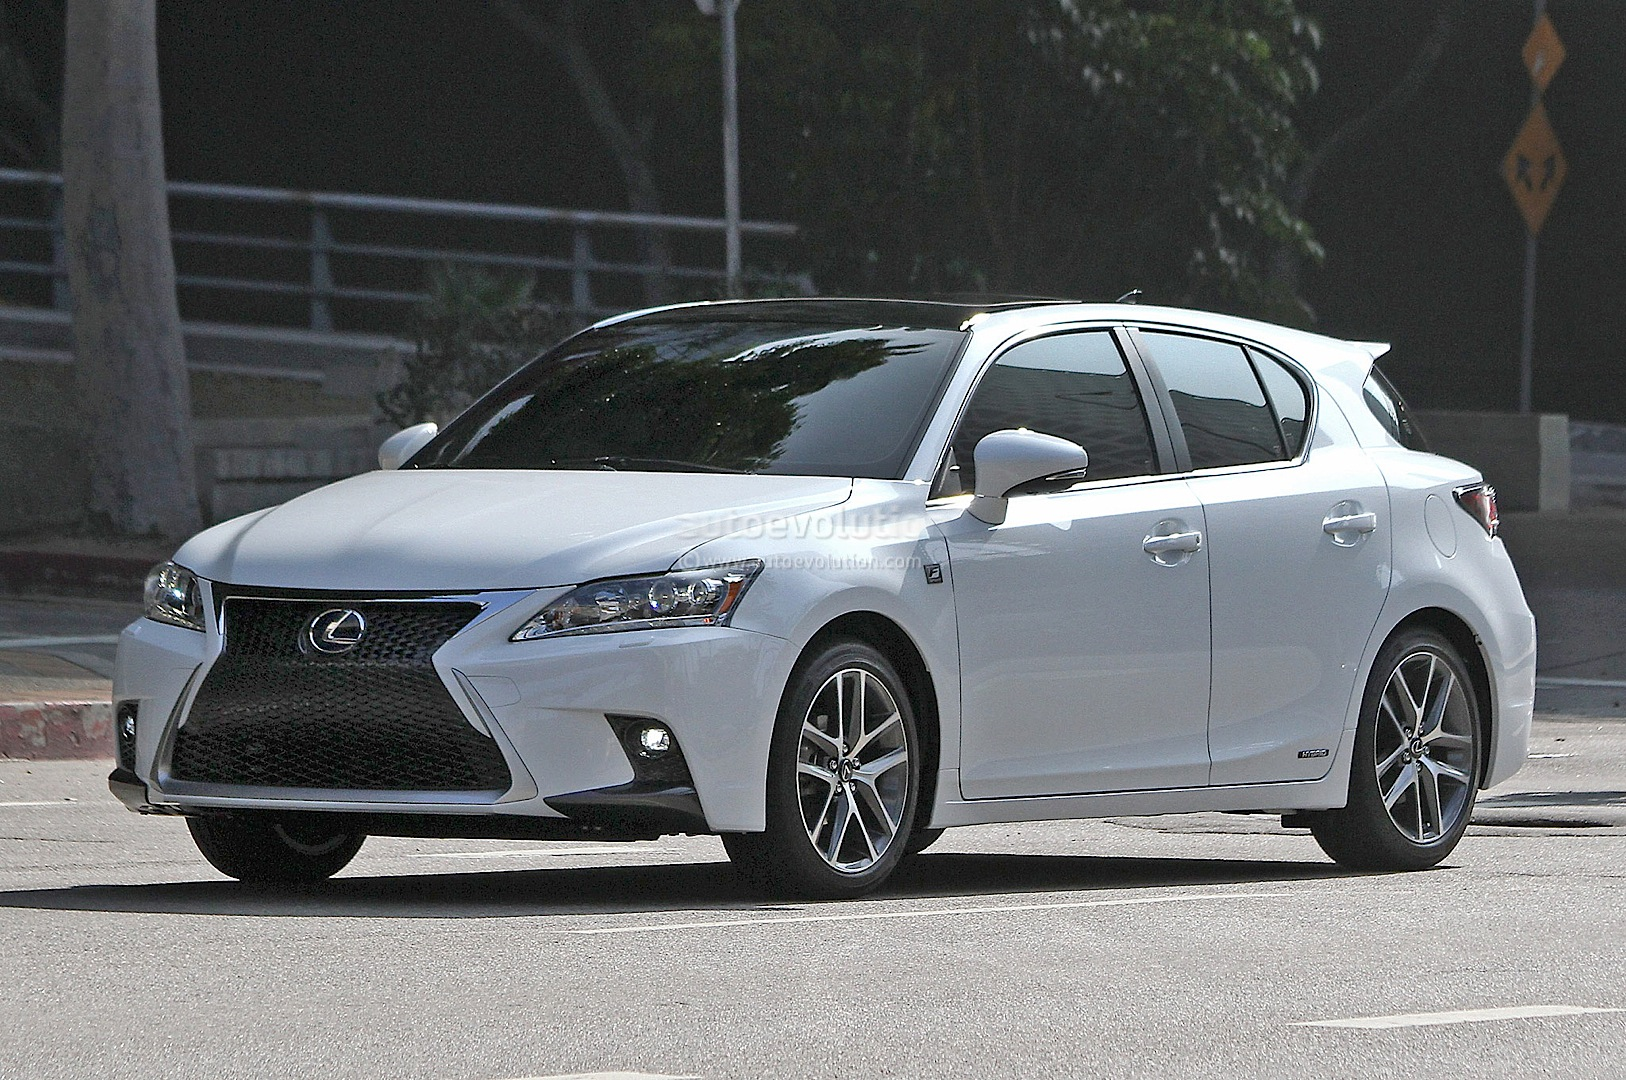 spyshots 2014 lexus ct 200h f sport captured again autoevolution. Black Bedroom Furniture Sets. Home Design Ideas